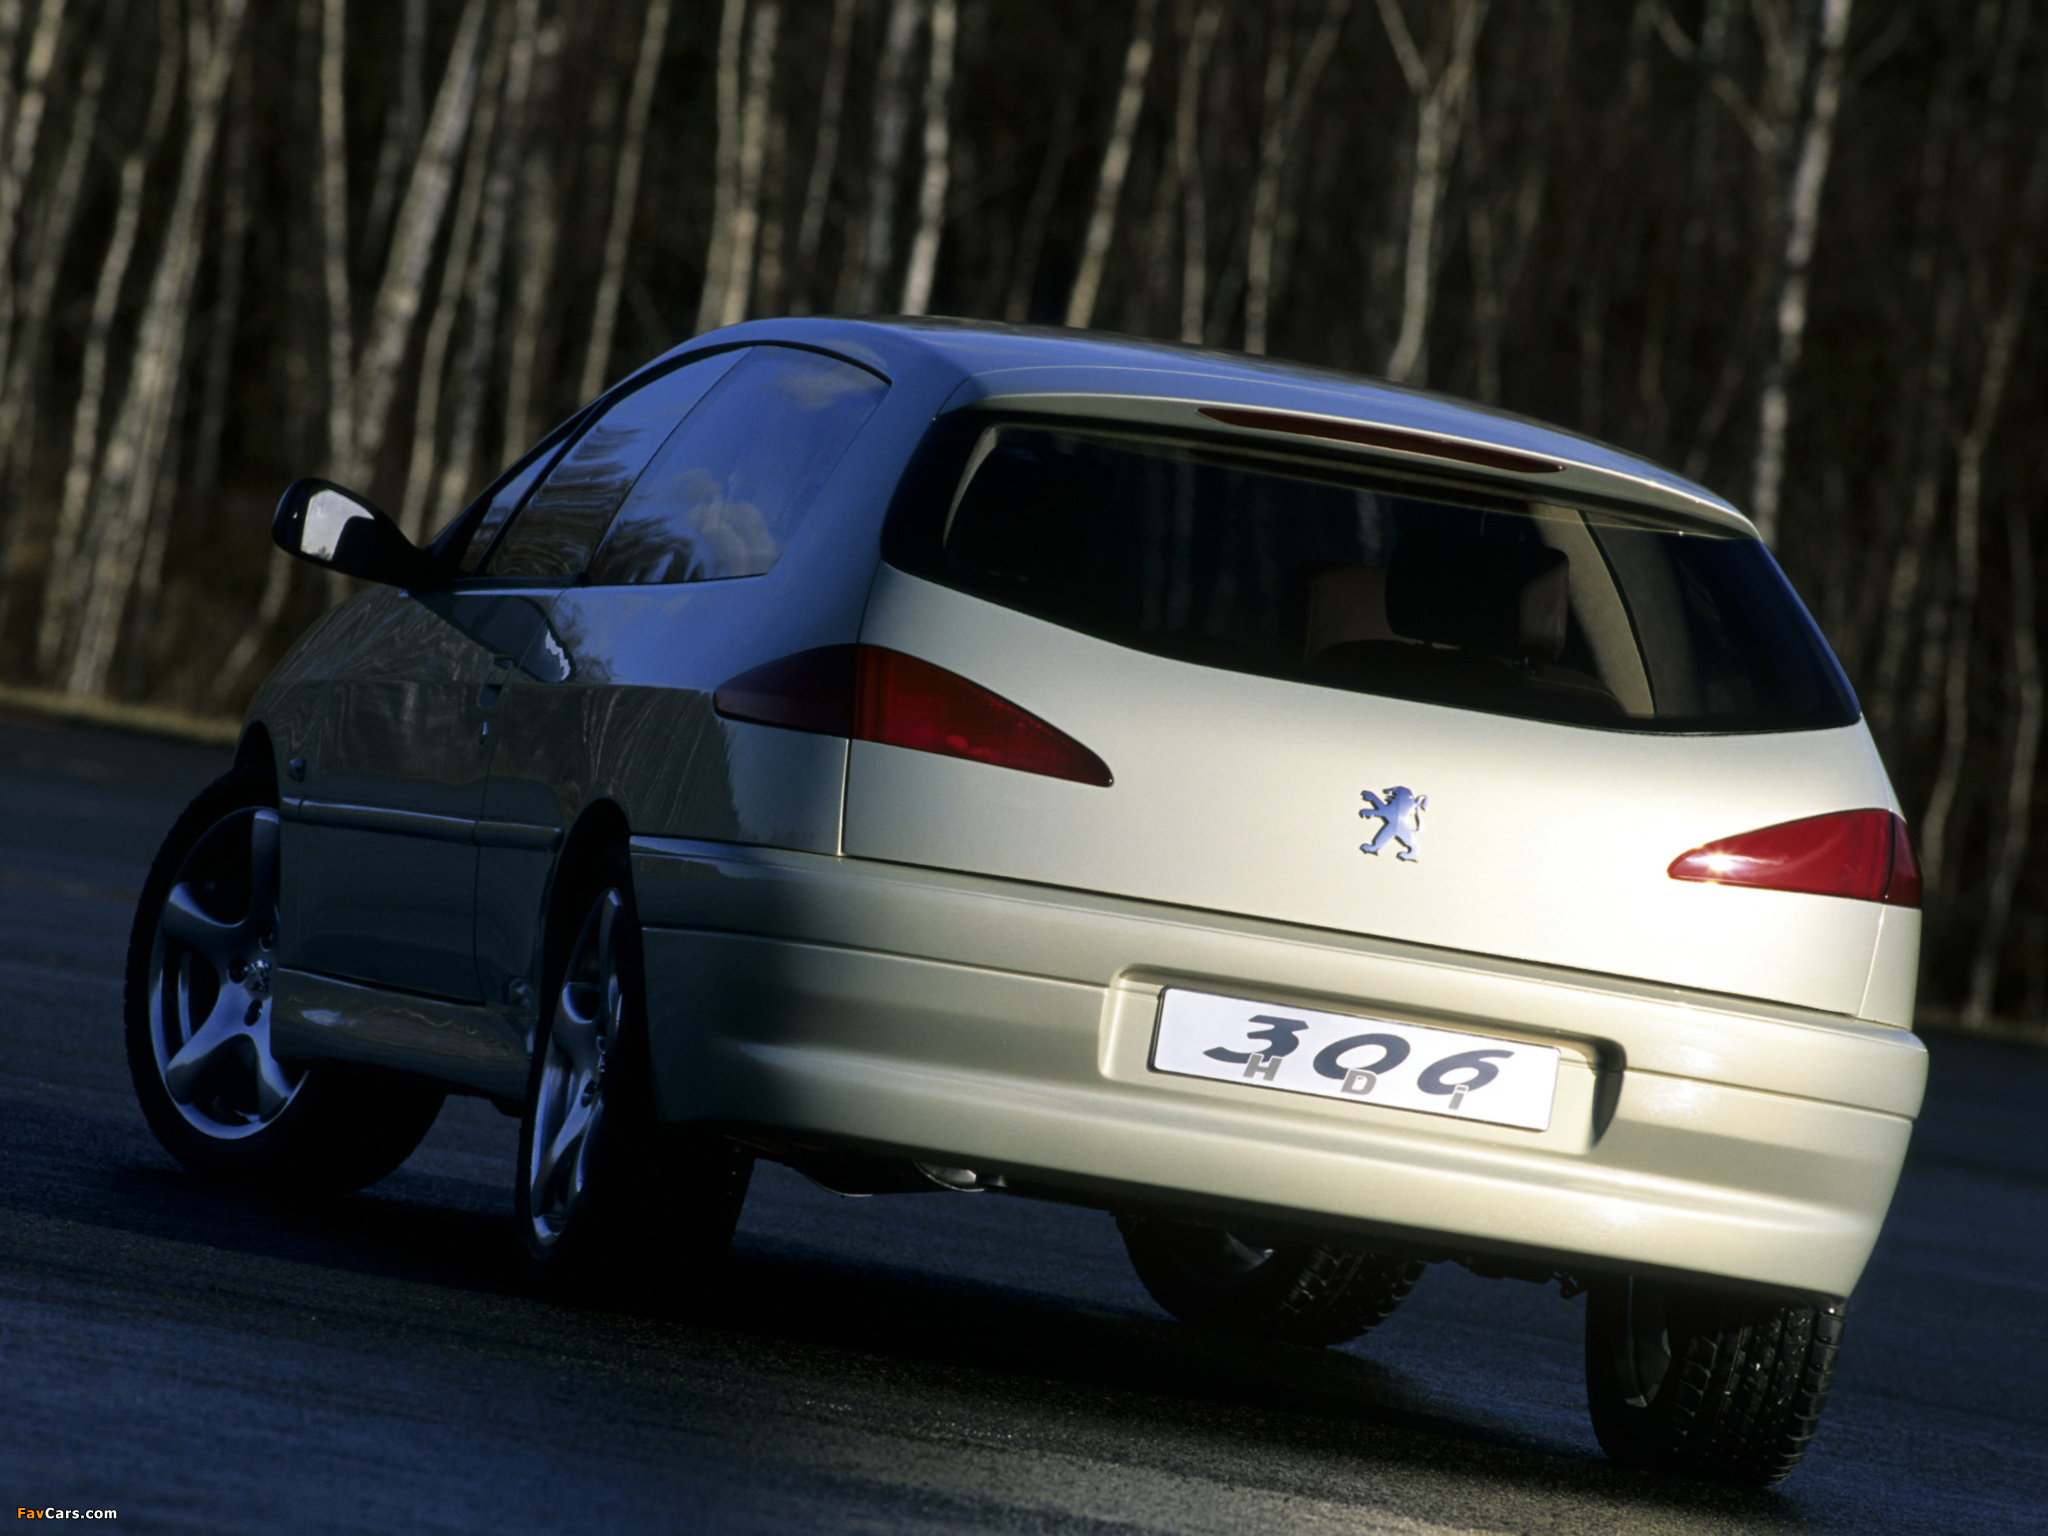 Peugeot 306 HDI Concept 1999 wallpapers (2048 x 1536)